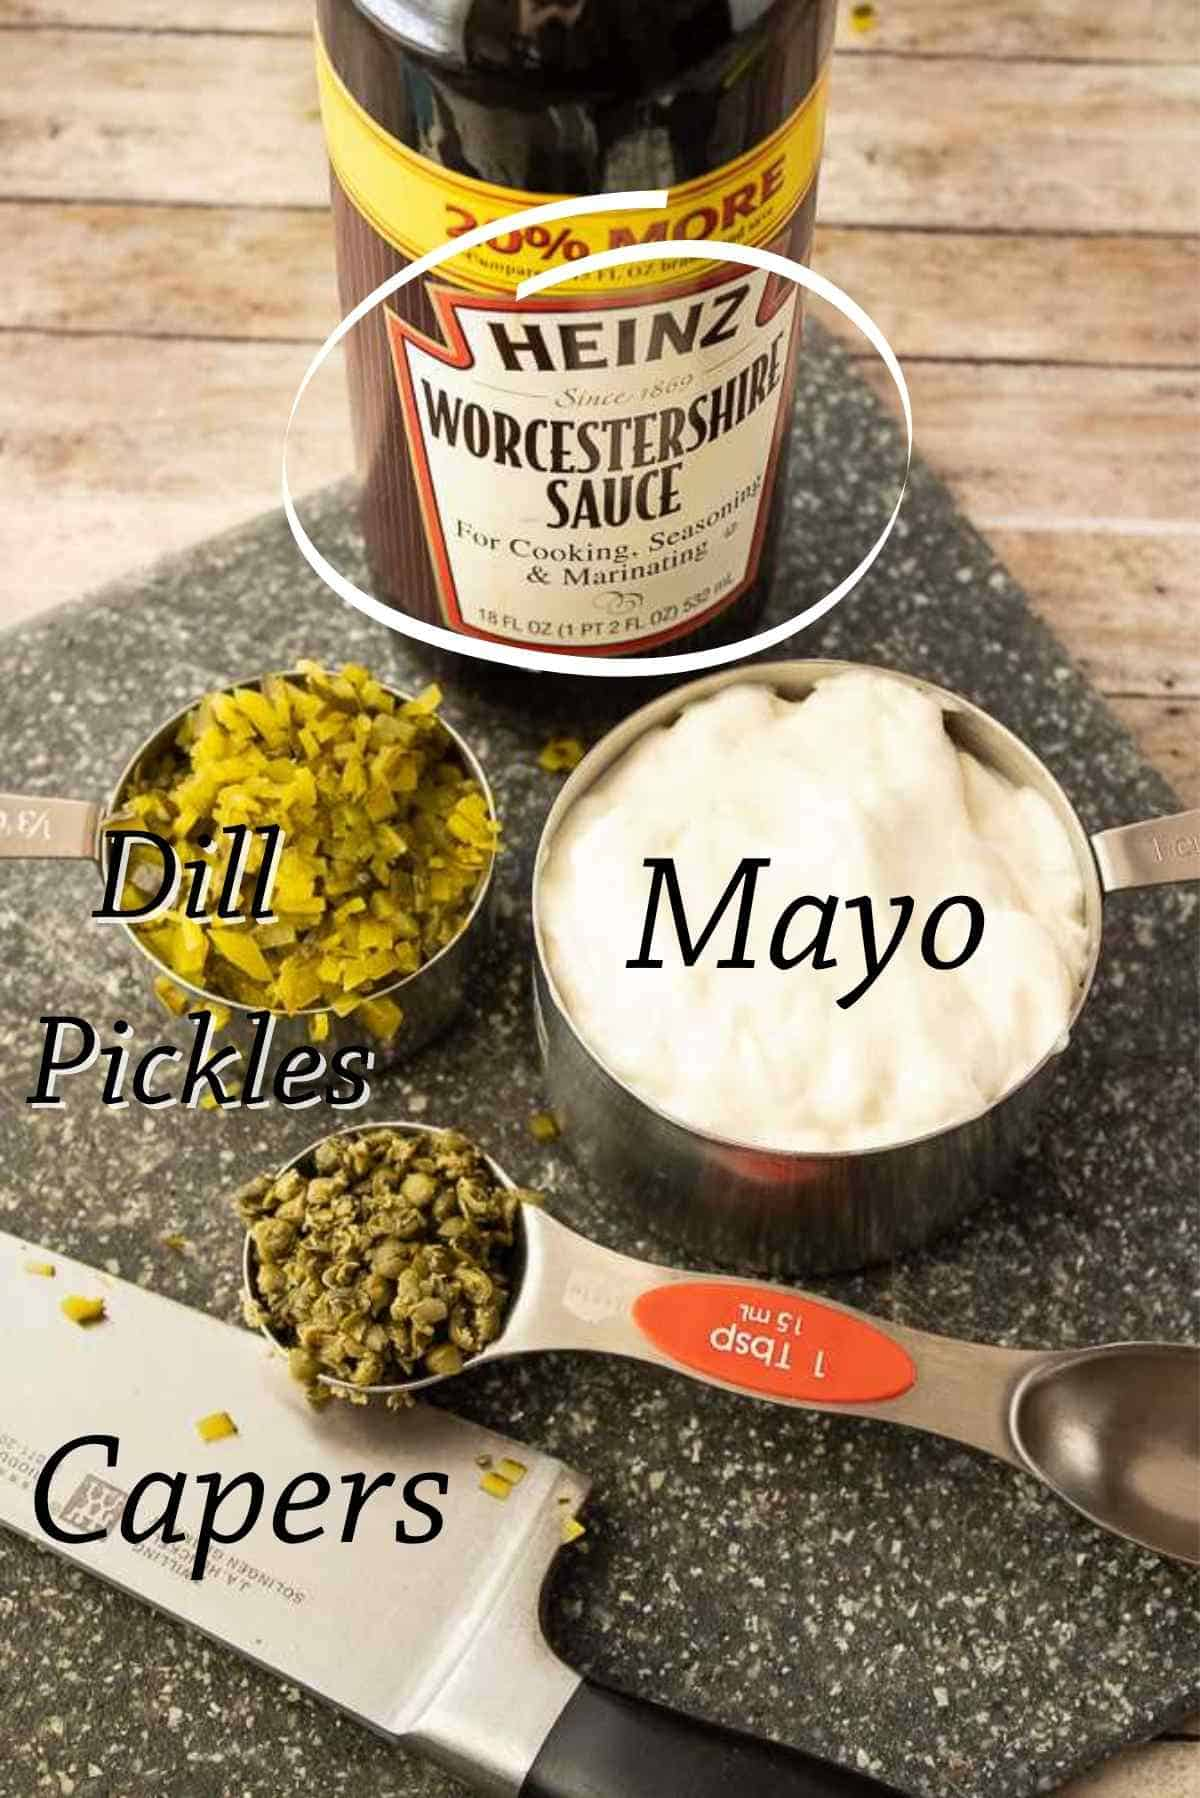 The four ingredients needed to make tartar sauce.